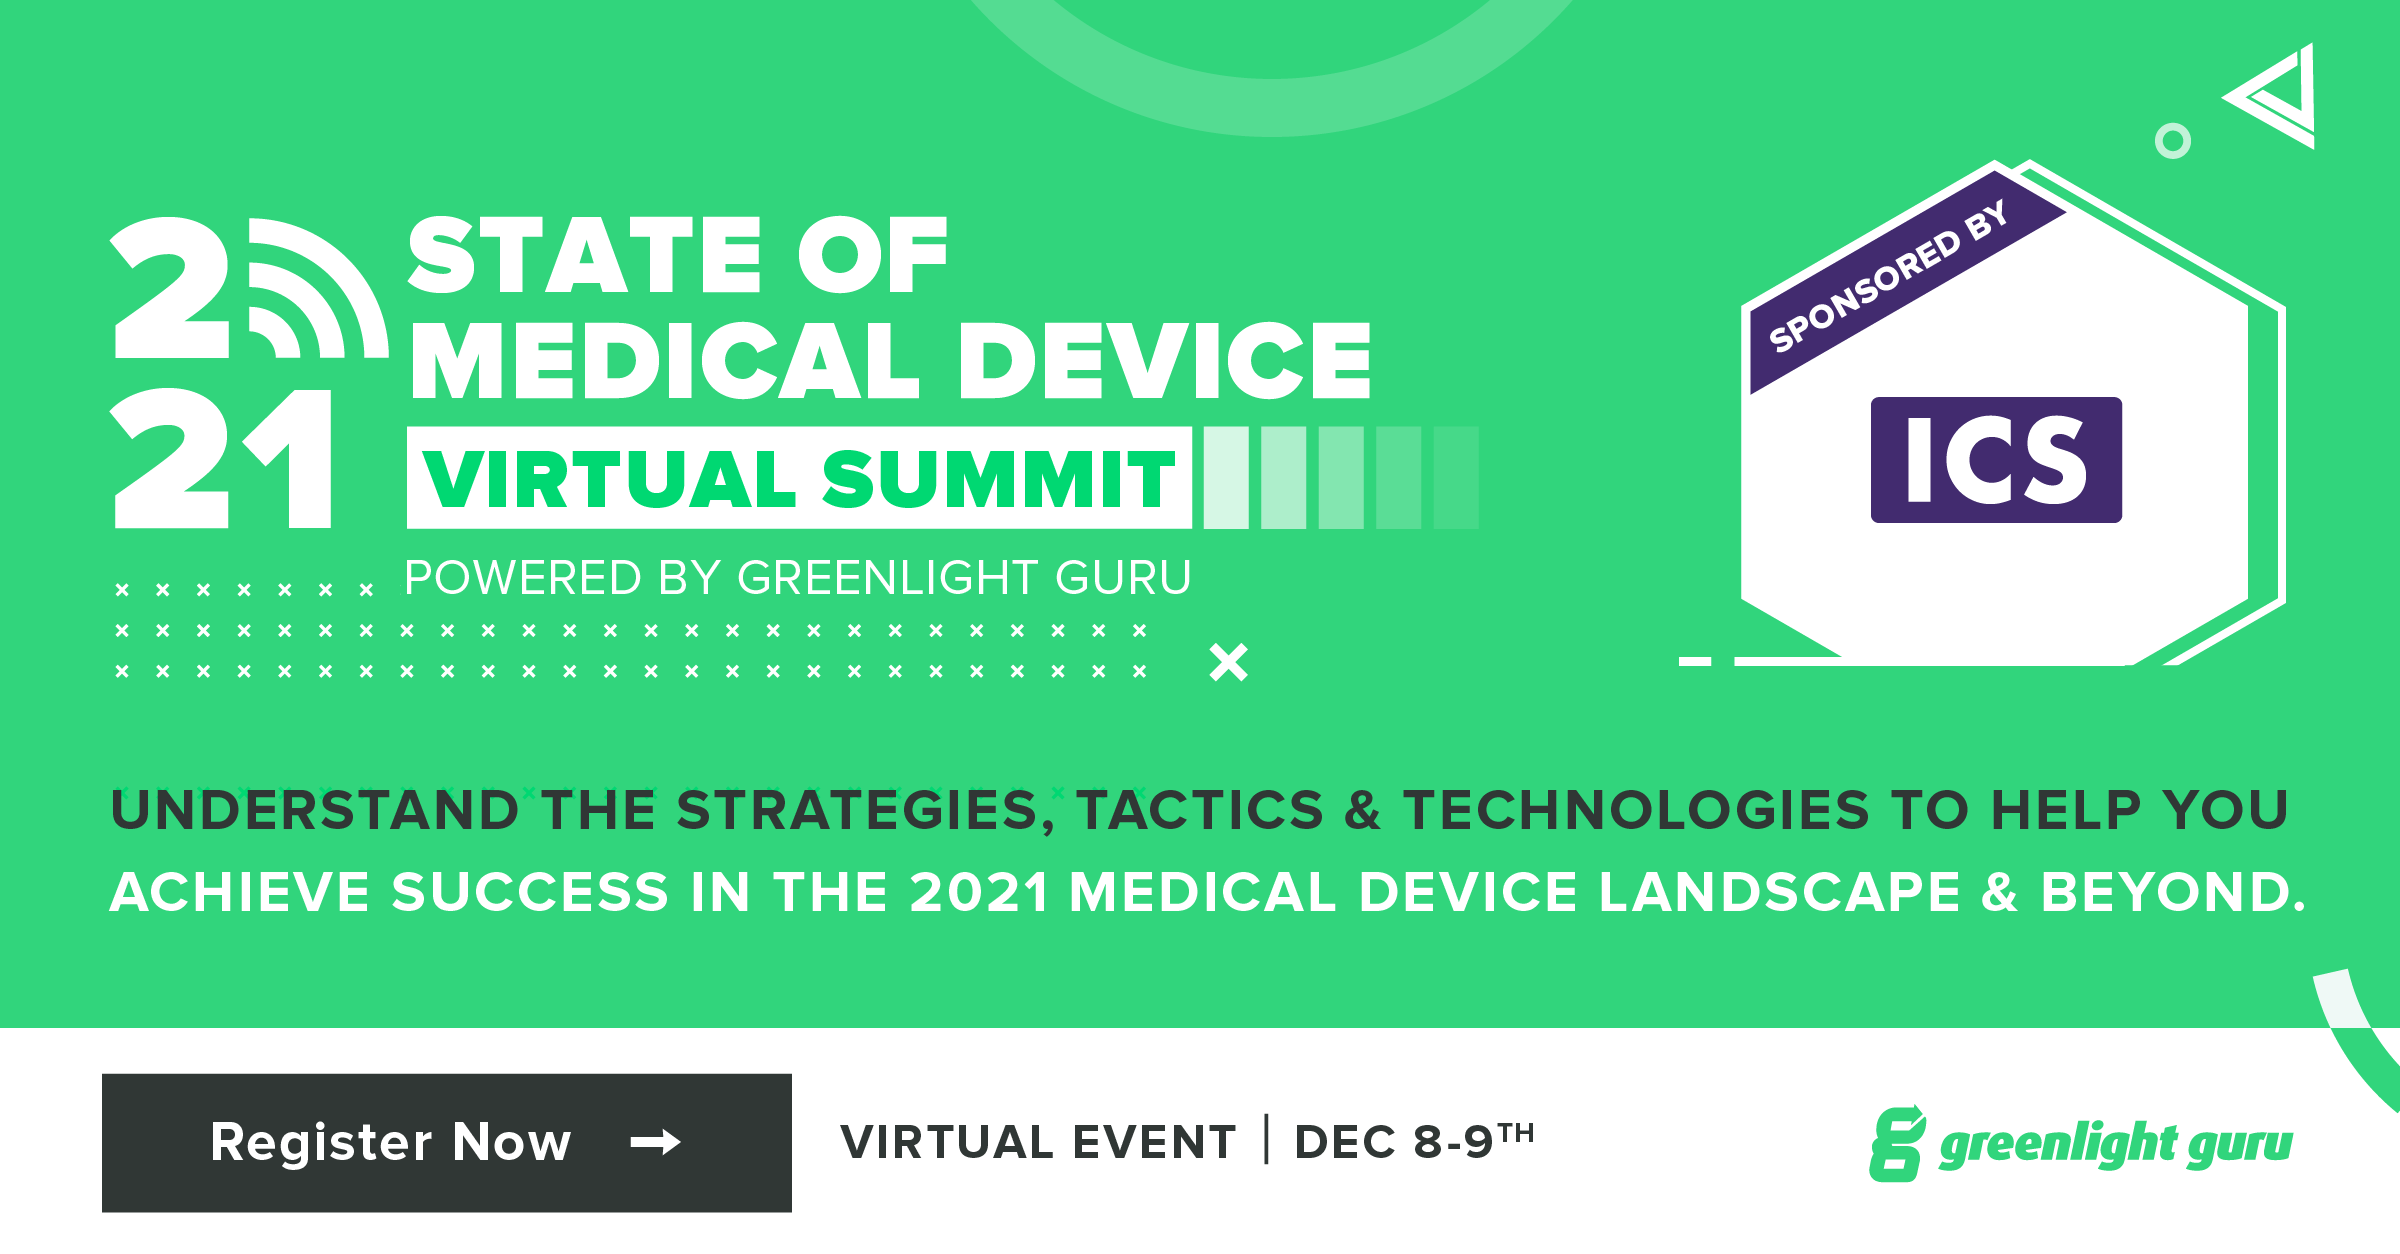 2021 STATE OF MEDICAL DEVICE VIRTUAL SUMMIT